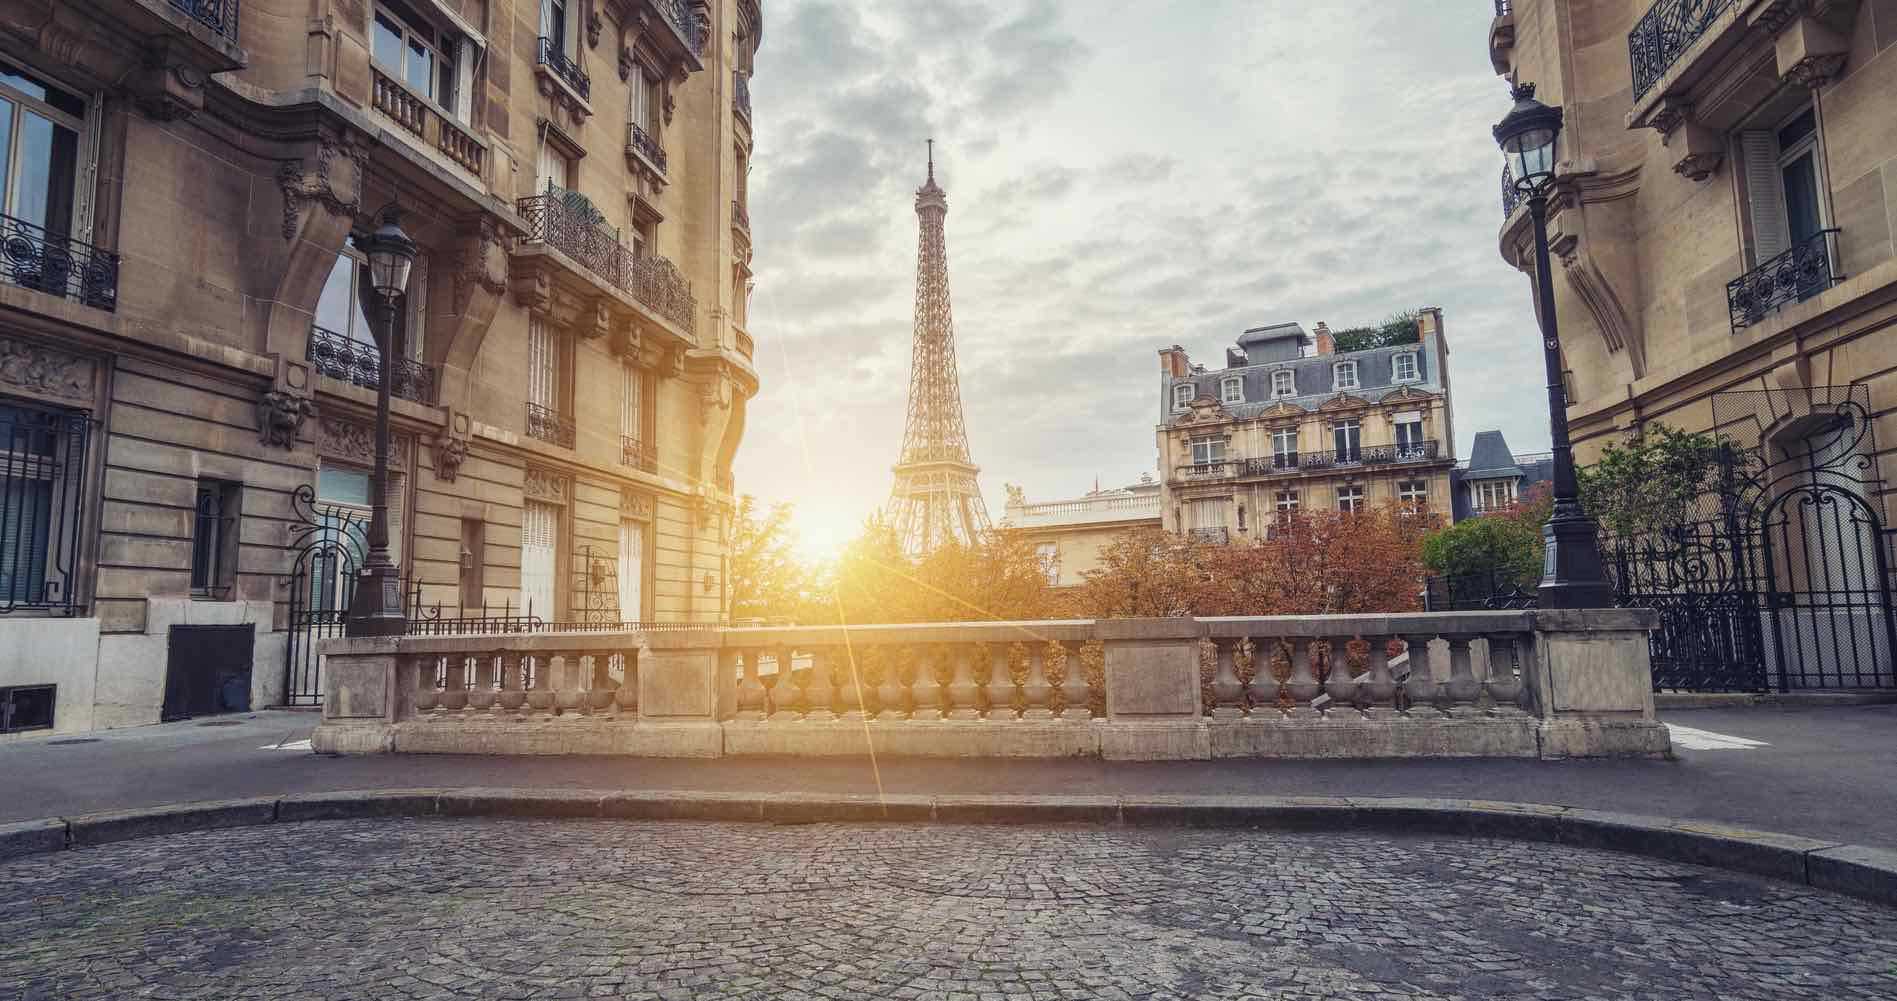 Insta-Famous Spots in Paris by Paris Perfect